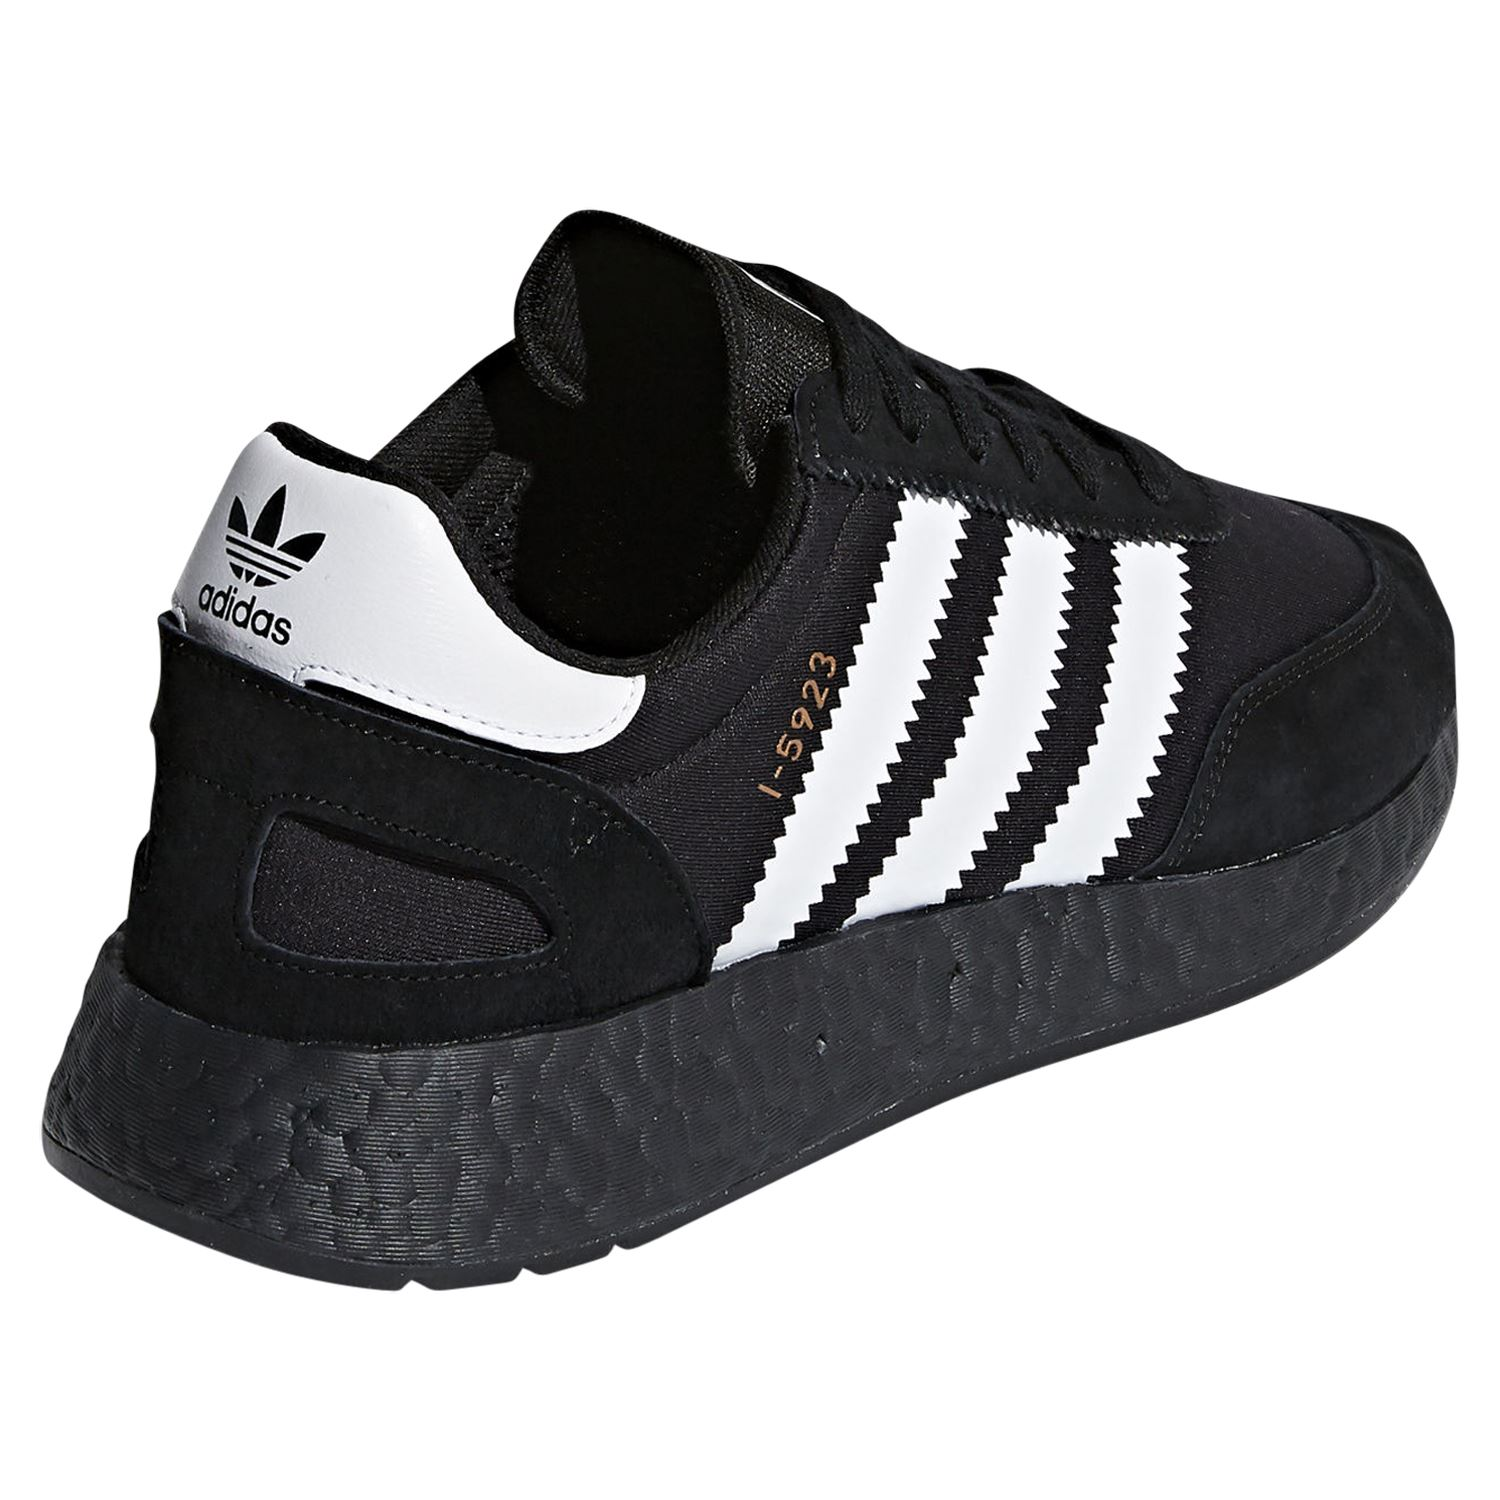 arrives 8d3c7 7e6c6 adidas ORIGINALS MEN S INIKI BOOST I-5923 TRAINERS BLACK SNEAKERS SHOES